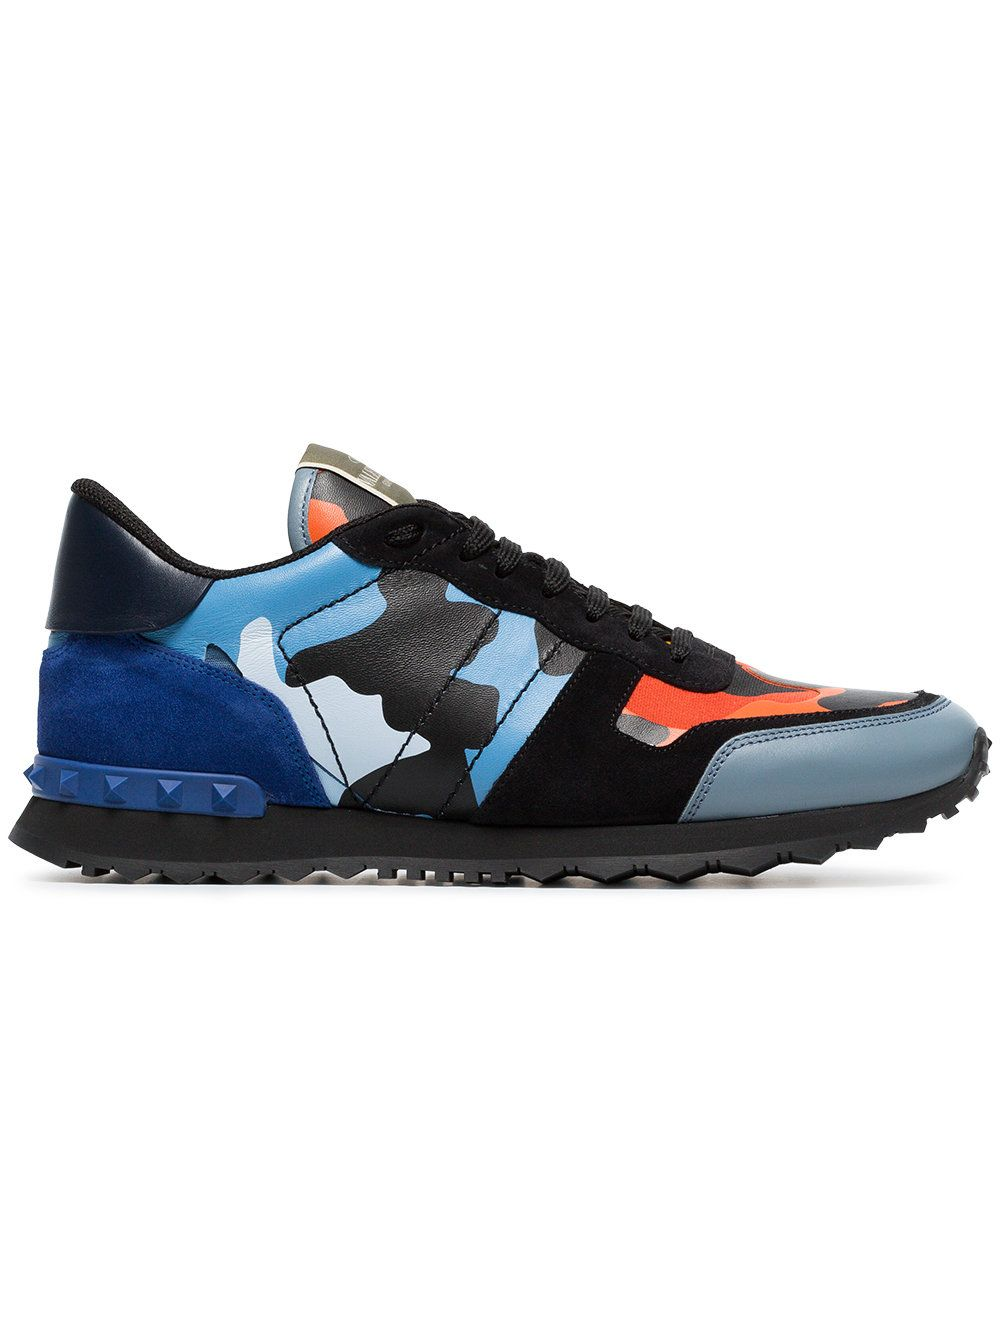 9c9f73a114285 Valentino Black, blue and orange camouflage rockrunner leather sneakers